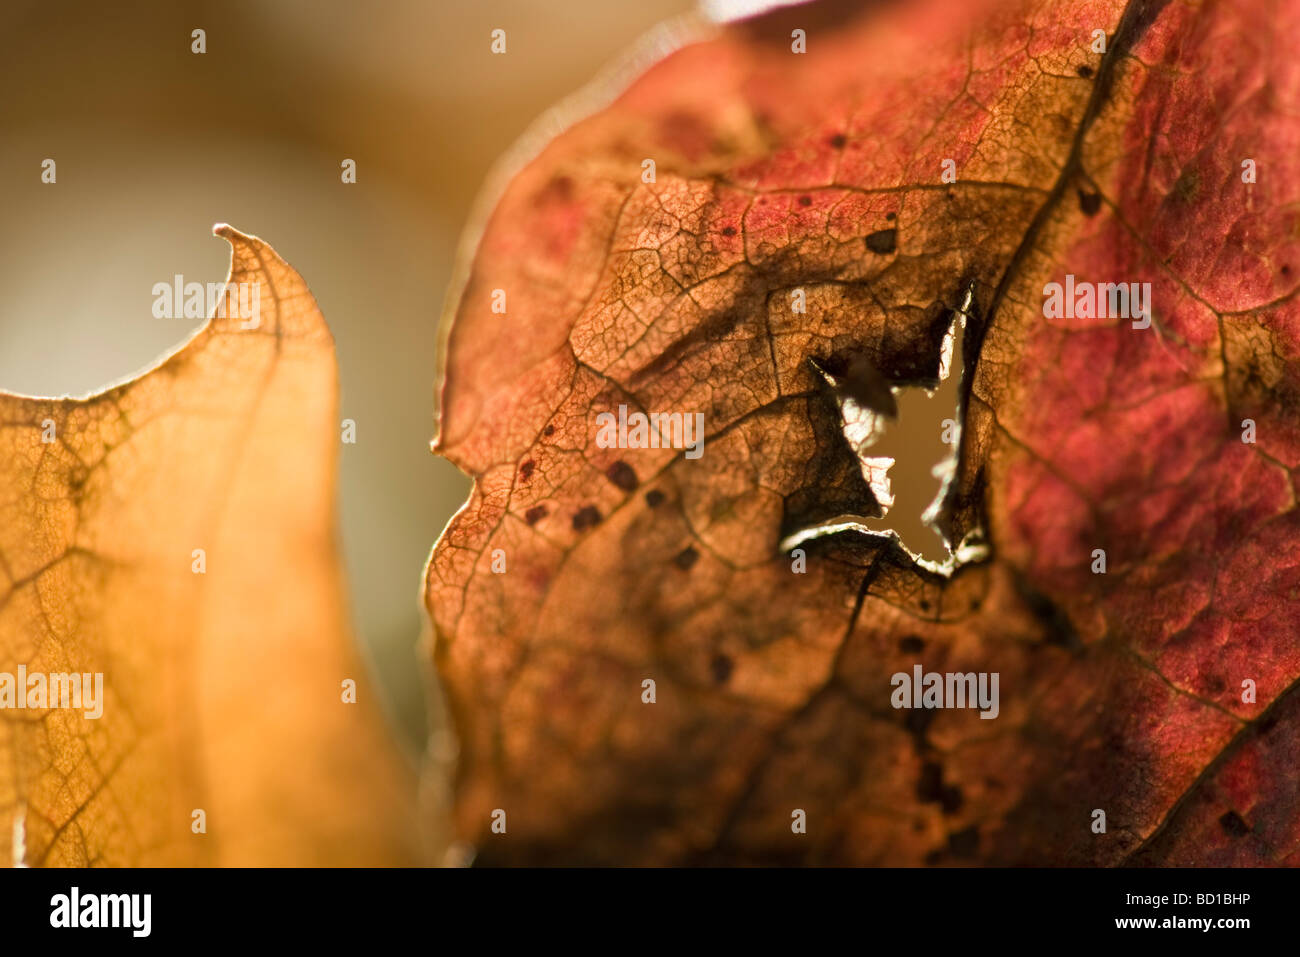 Dried leaf with hole in it, extreme close-up - Stock Image